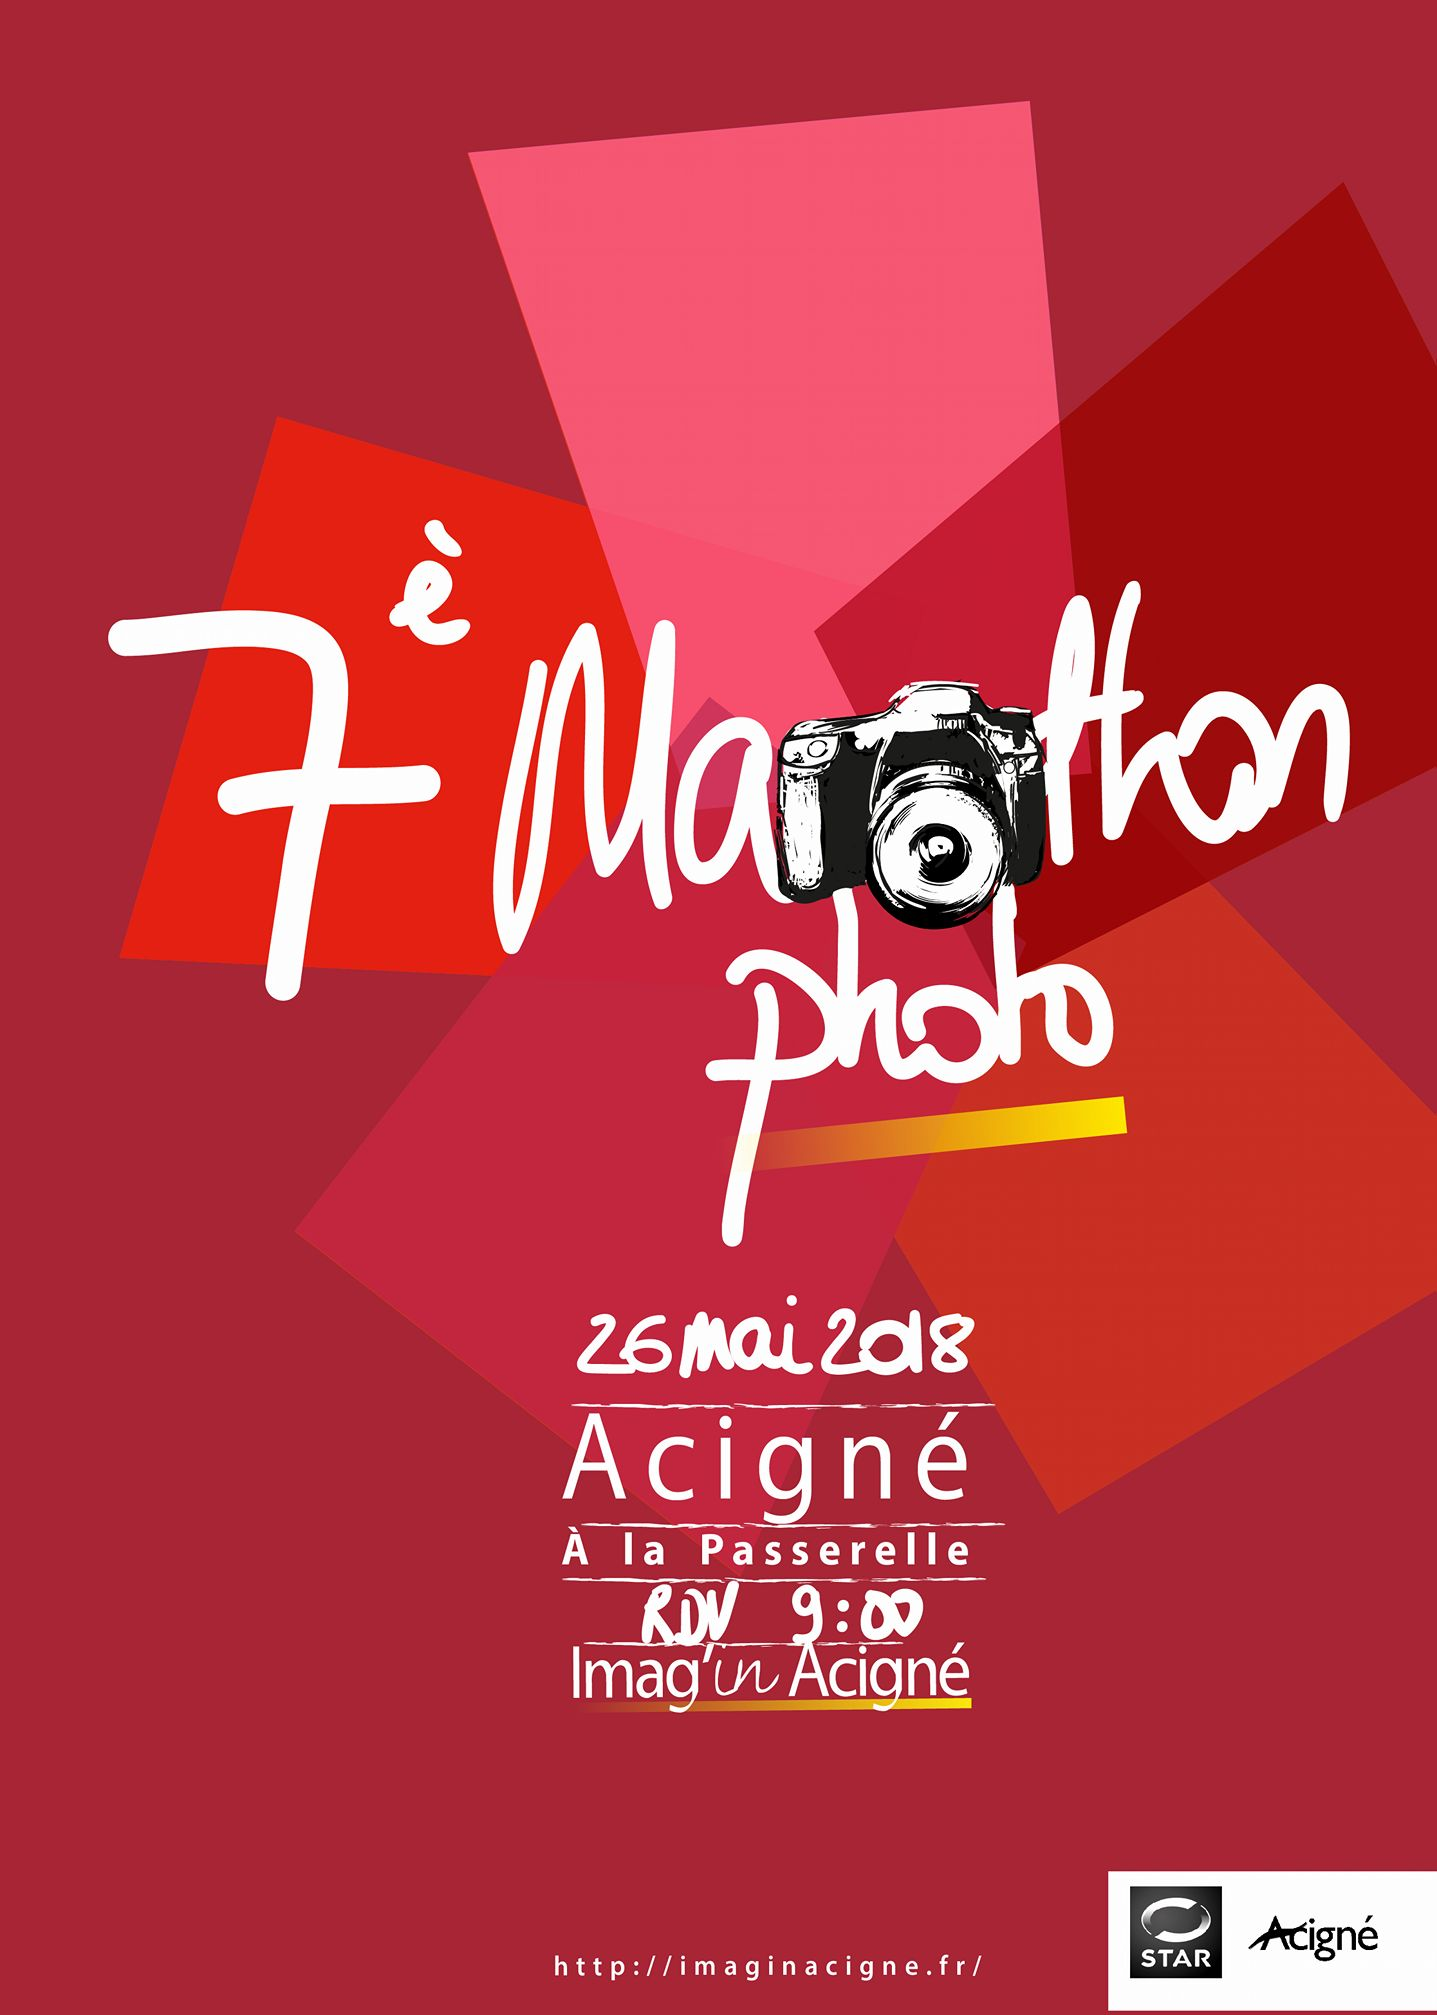 7e marathon photos d'Acigné2018